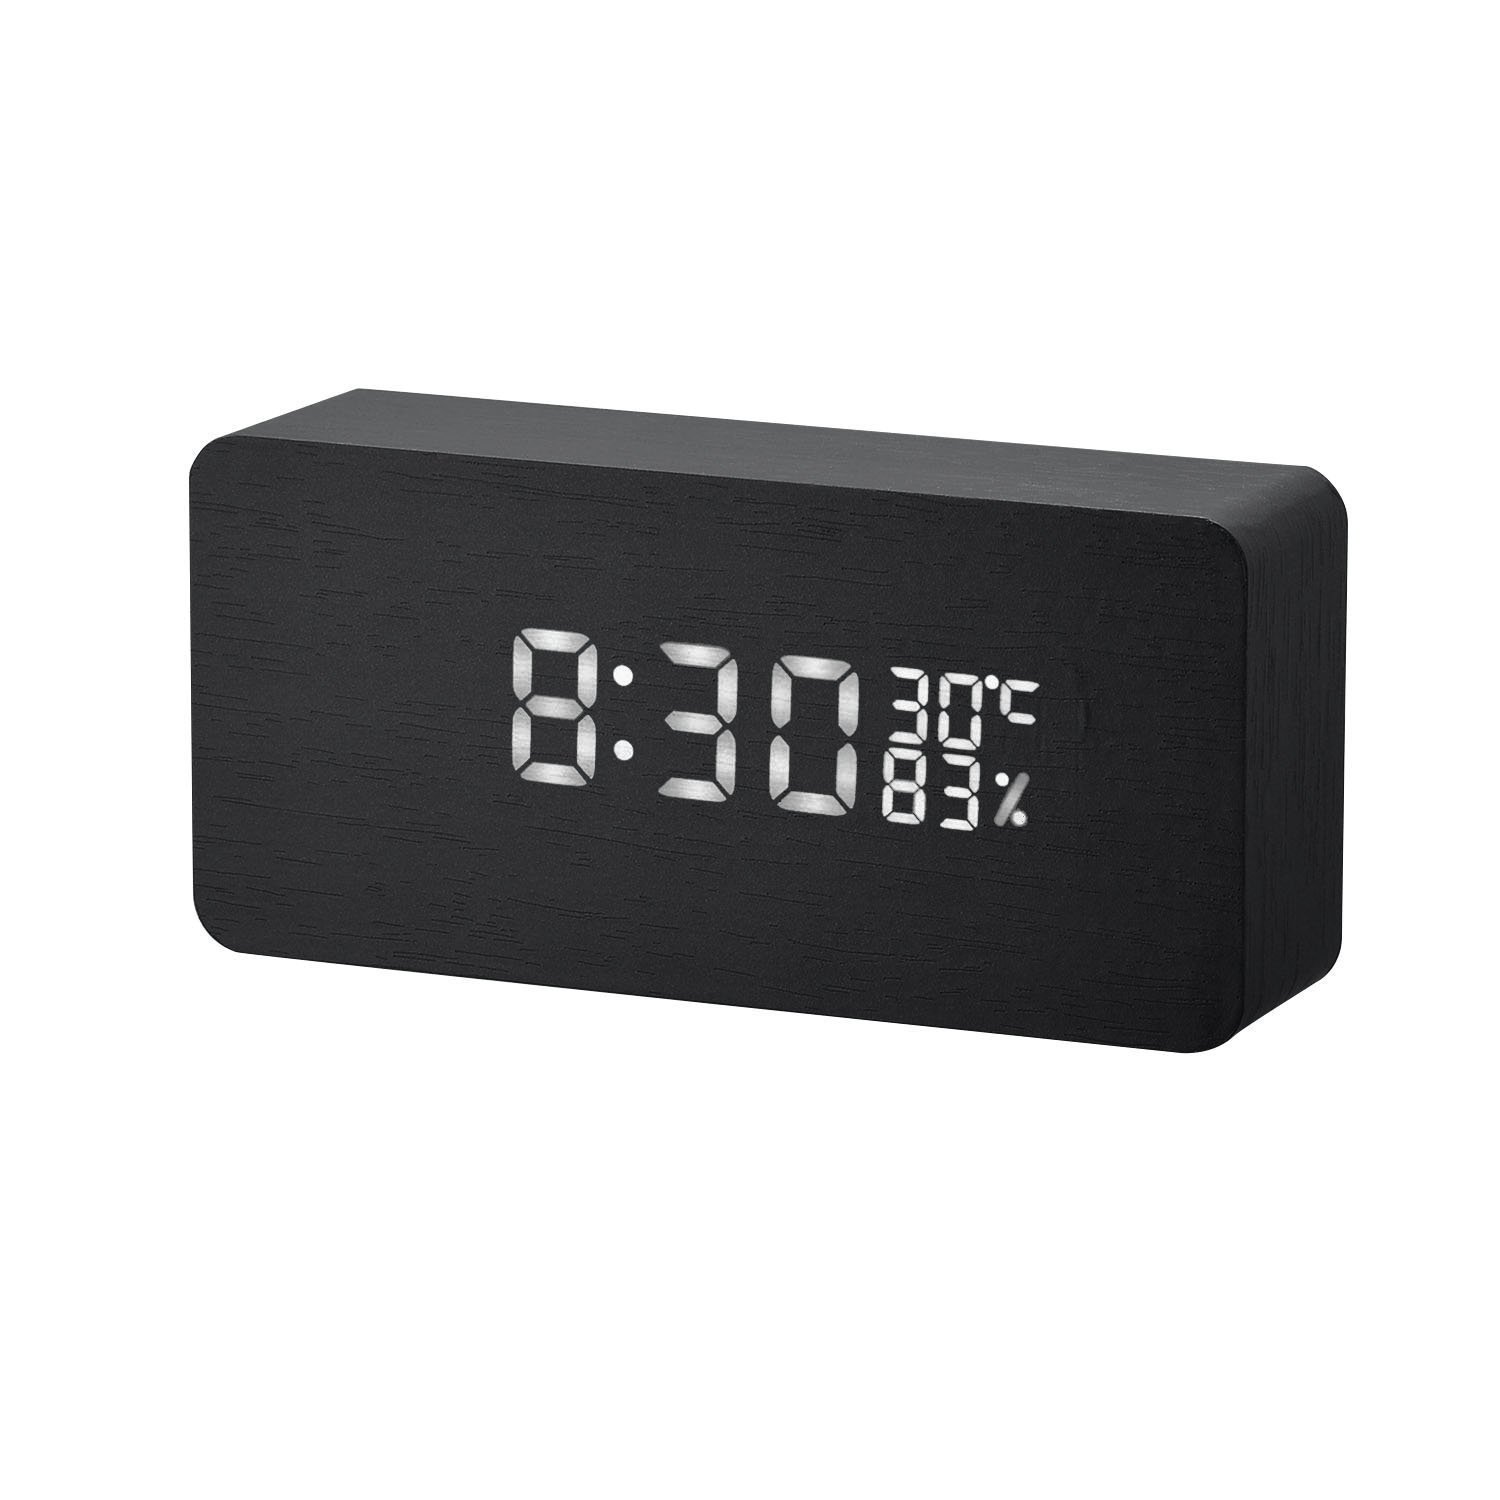 EKSAVE Alarm Clock Imitation Wooden LED Digital, Displays Time Date Week And Temperature, Cube Wood-shaped Sound Control Desk Alarm Clock for Kid, Home, Office, Daily Life